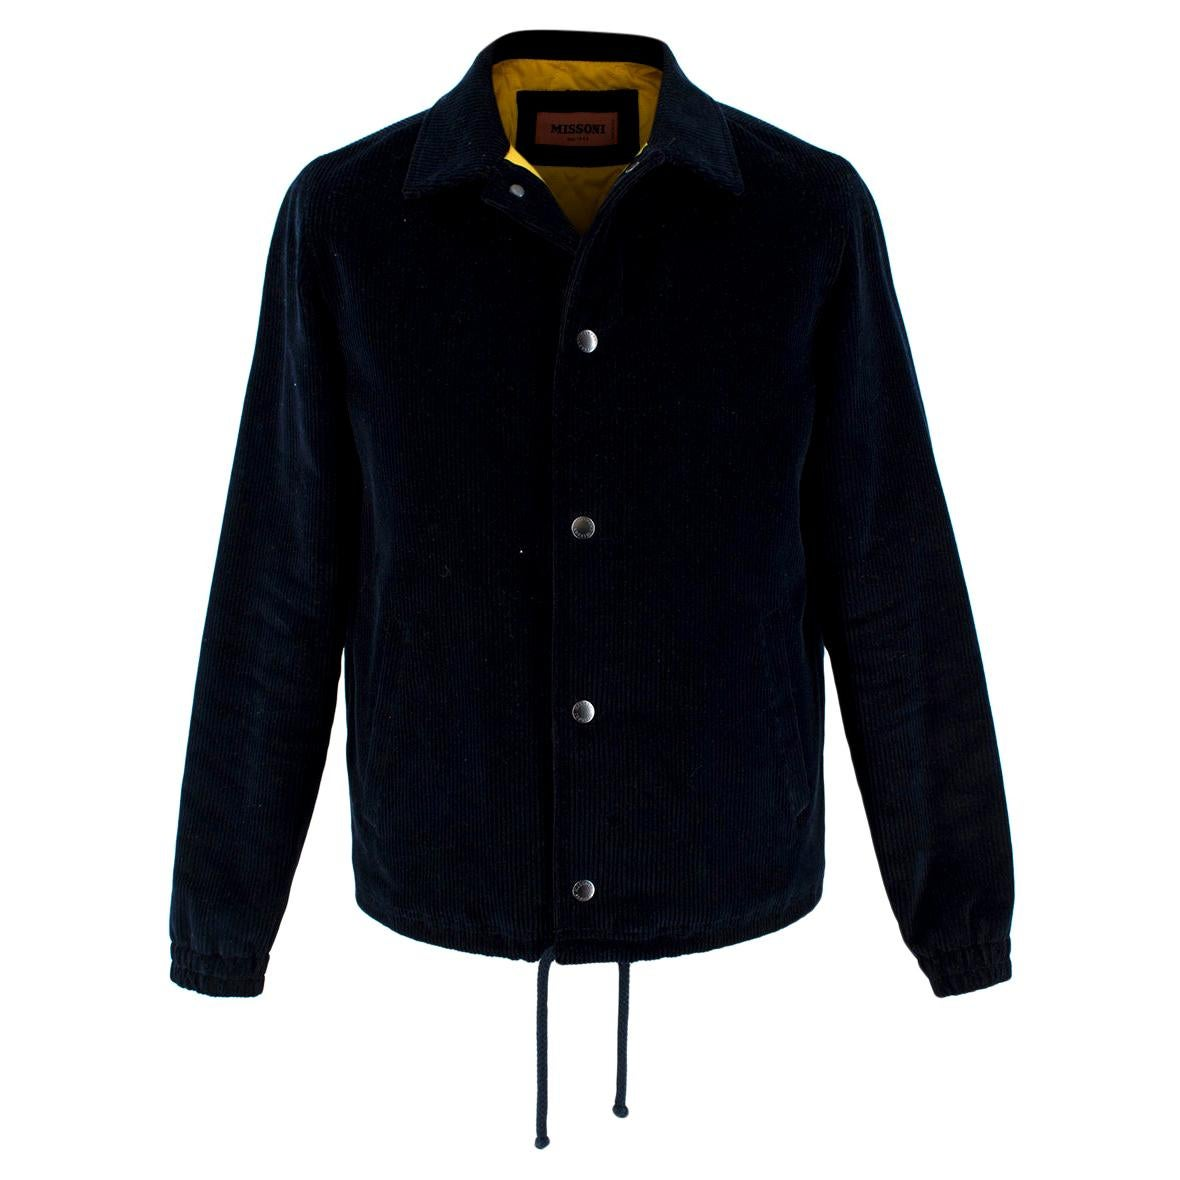 Missoni Embroidered Navy Cord Jacket - XS